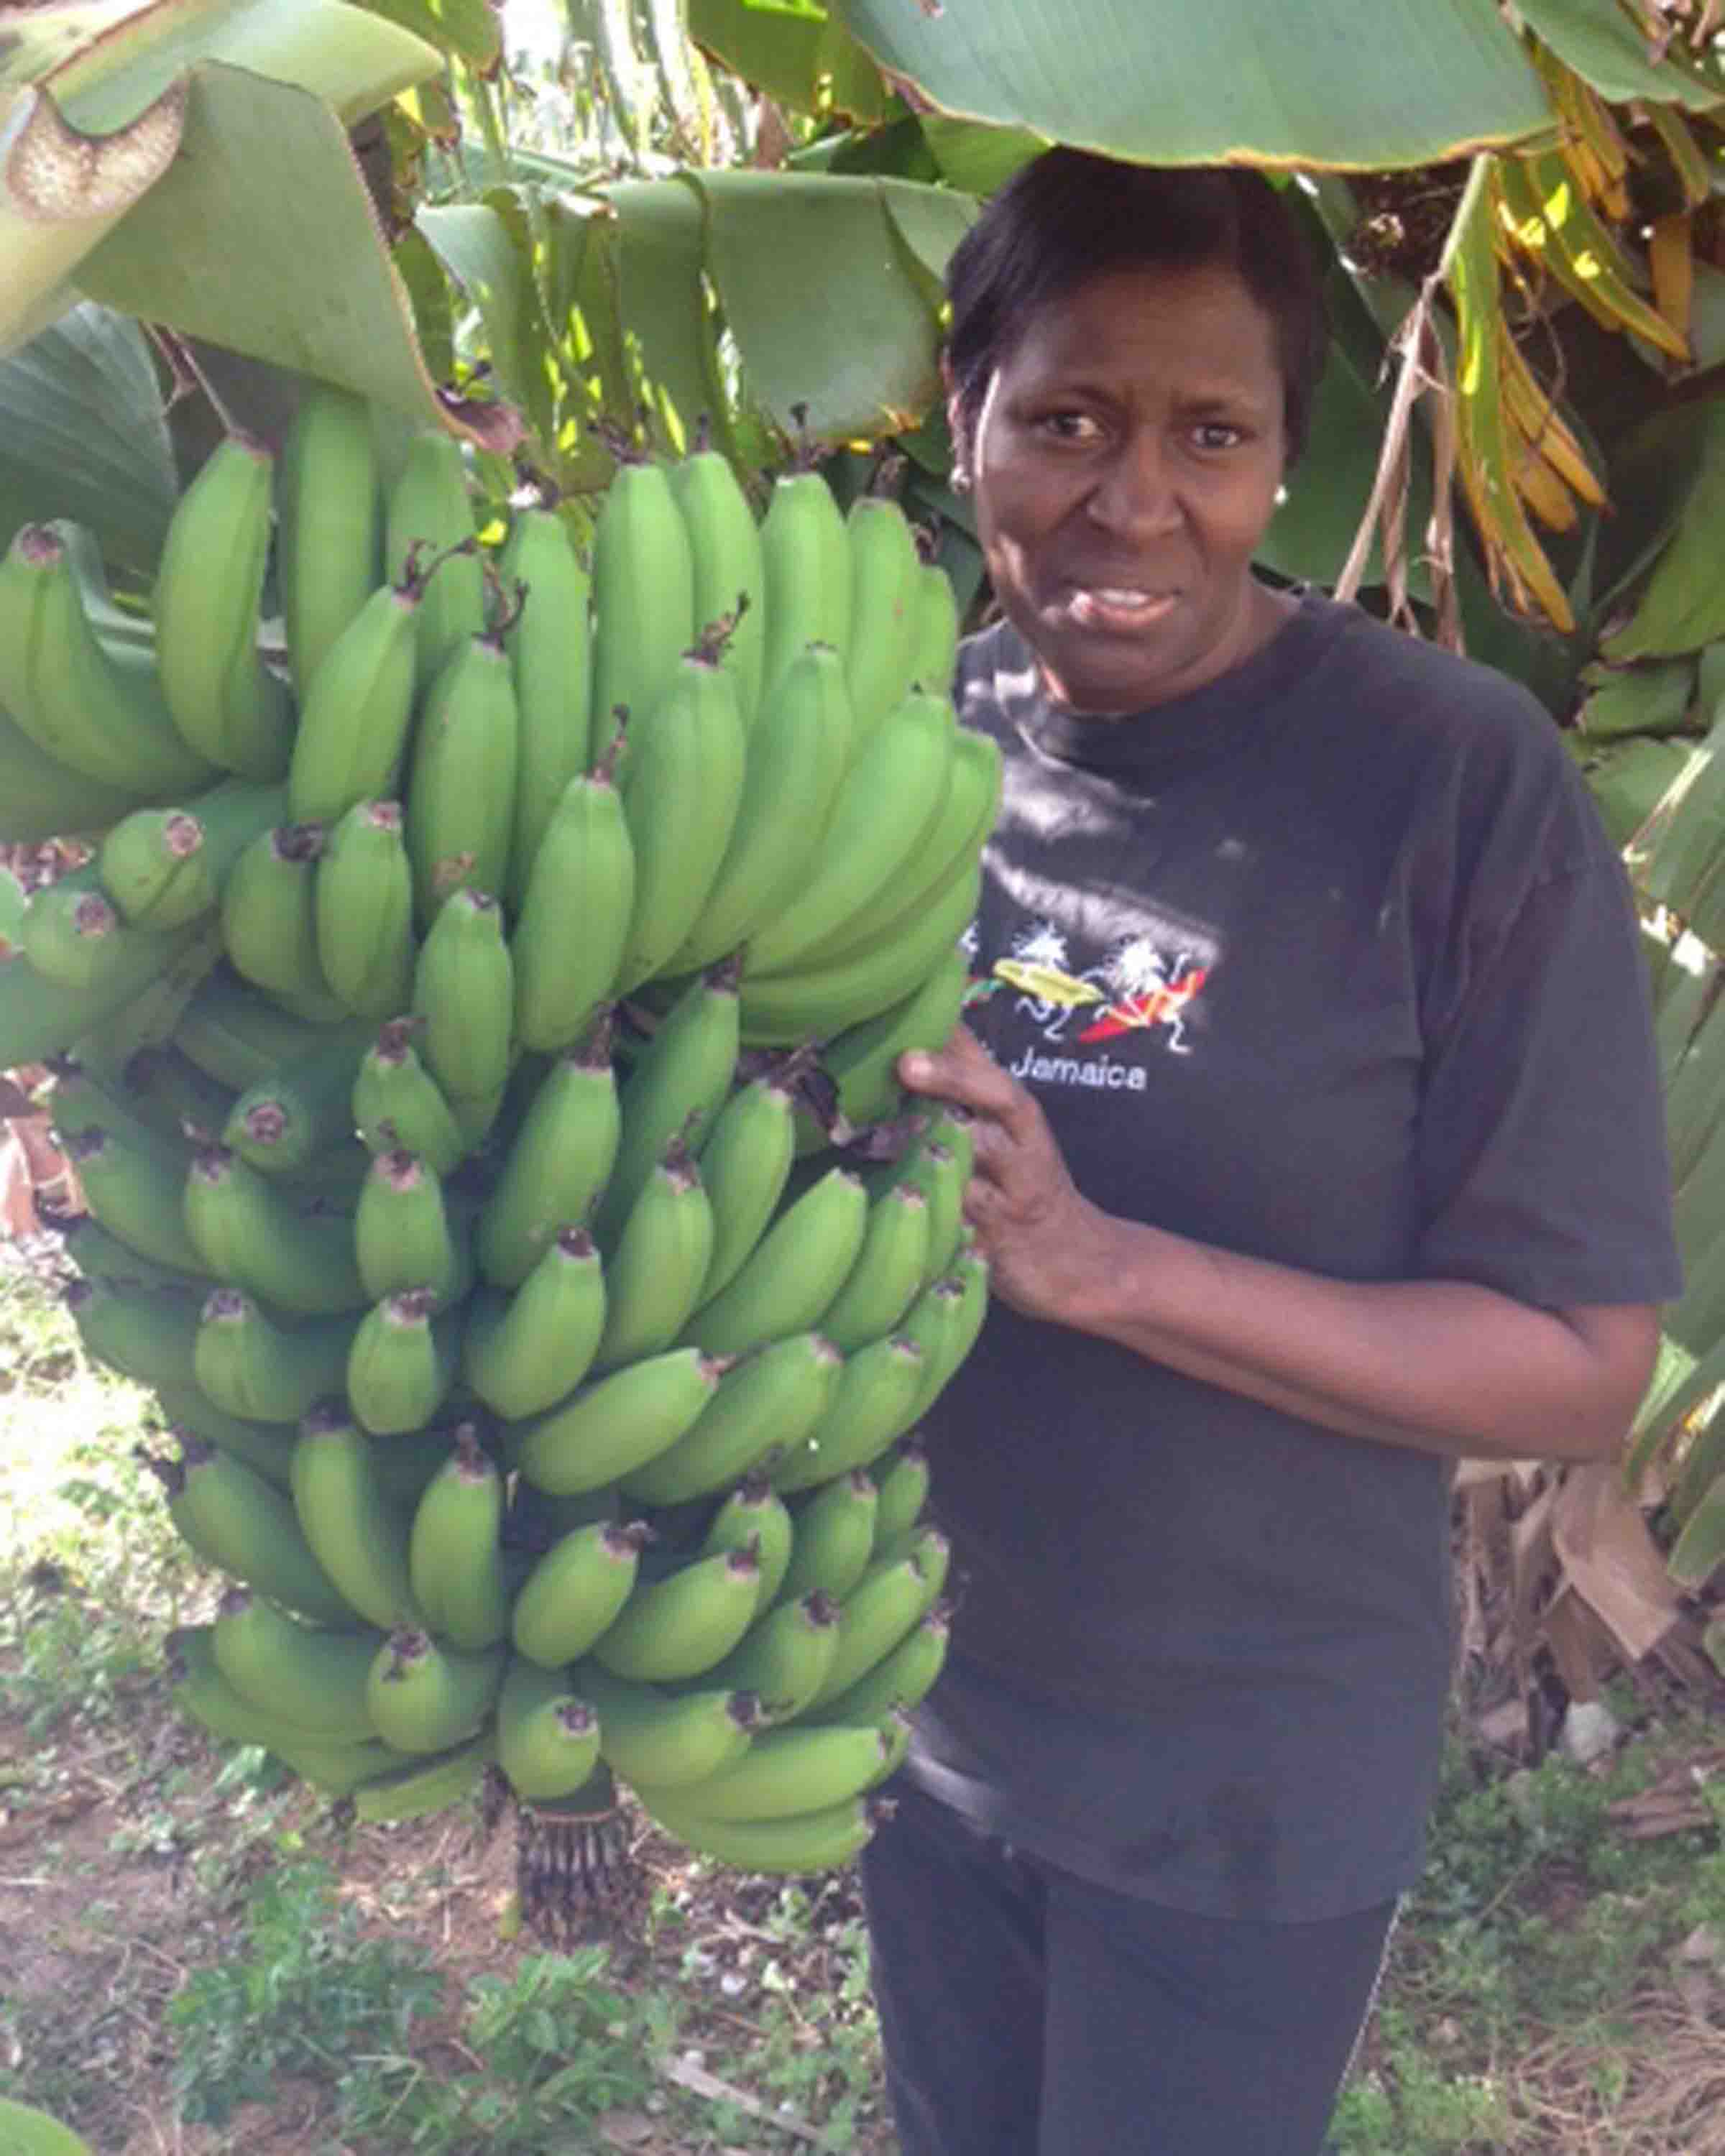 Loving care: Along with flowers, Ann Marie DeGraff also grows bananas on her farm at her home in Somerset.